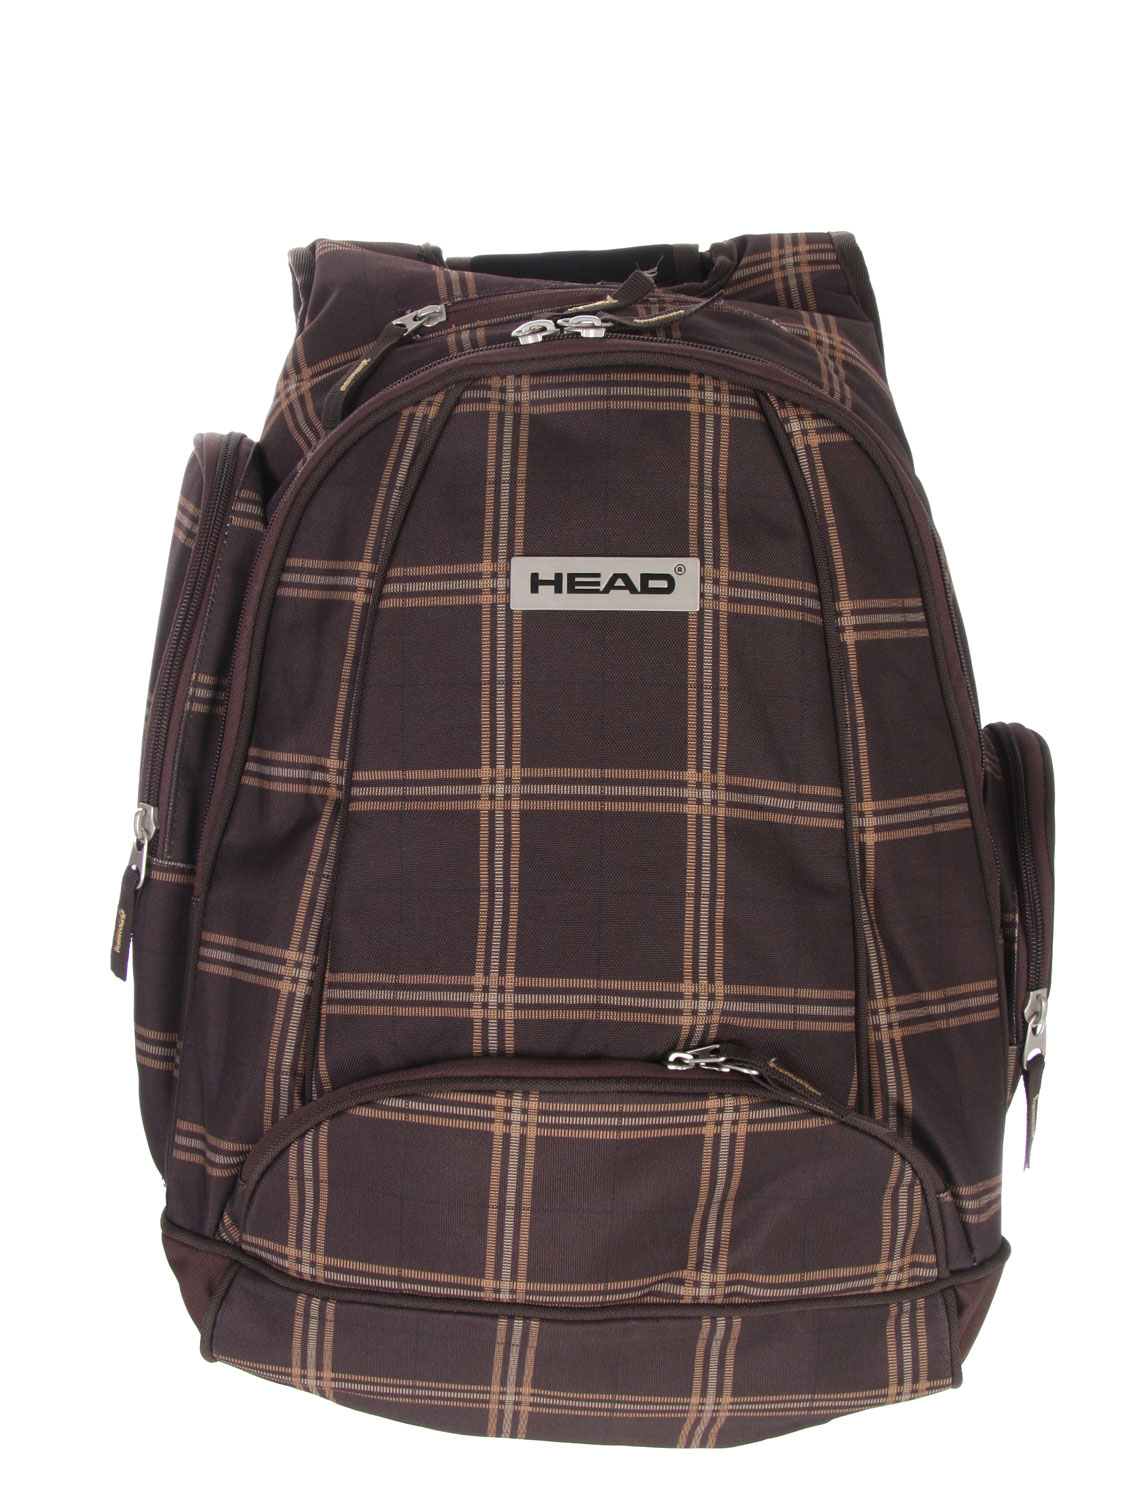 The Head Street Backpack is a rugged and stylish bag that is perfect for all occasions. With a thick layer of built in padding, the back pack is designed to carry laptops and other fragile objects safely and comfortably. The pack has two main pockets large enough to store books, binders, laptops, and plenty of other things. The side utility pockets give quick access to smaller objects and there is even a media pocket specially designed for an mp3 or CD player. With its padded straps, carrying around the Head Street Backpack is no chore either.Key Features of The Head Street Backpack: Padded Laptop Pocket Sound Pocket Ergonomic Padded Shoulder Strap Ergonomic Padded Back with Breathable Lining Fast Access Utility Pockets 36 x 17 x 52xm / 32L - $44.95